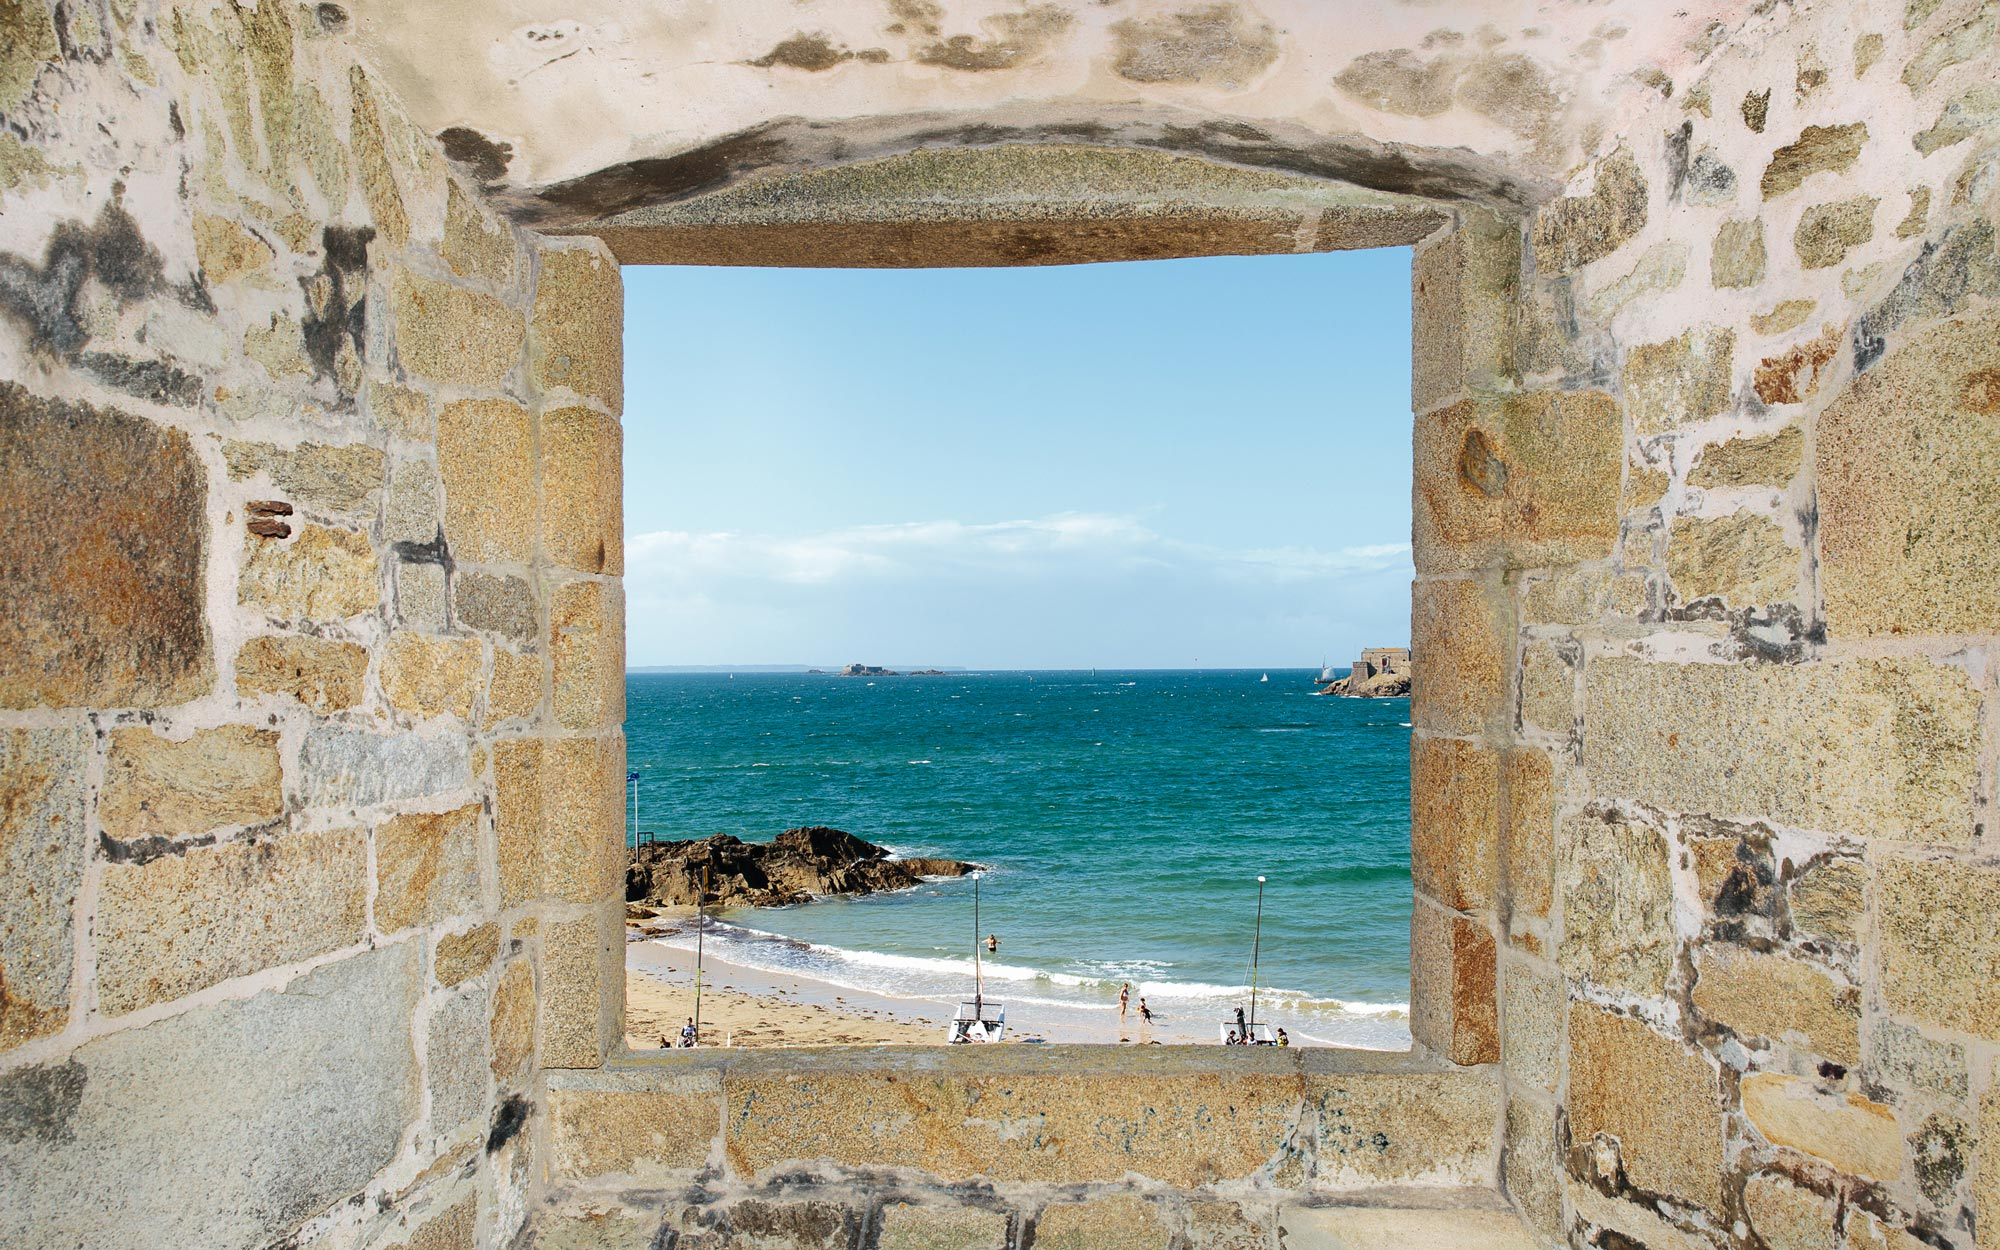 Mole Beach in Saint Malo France